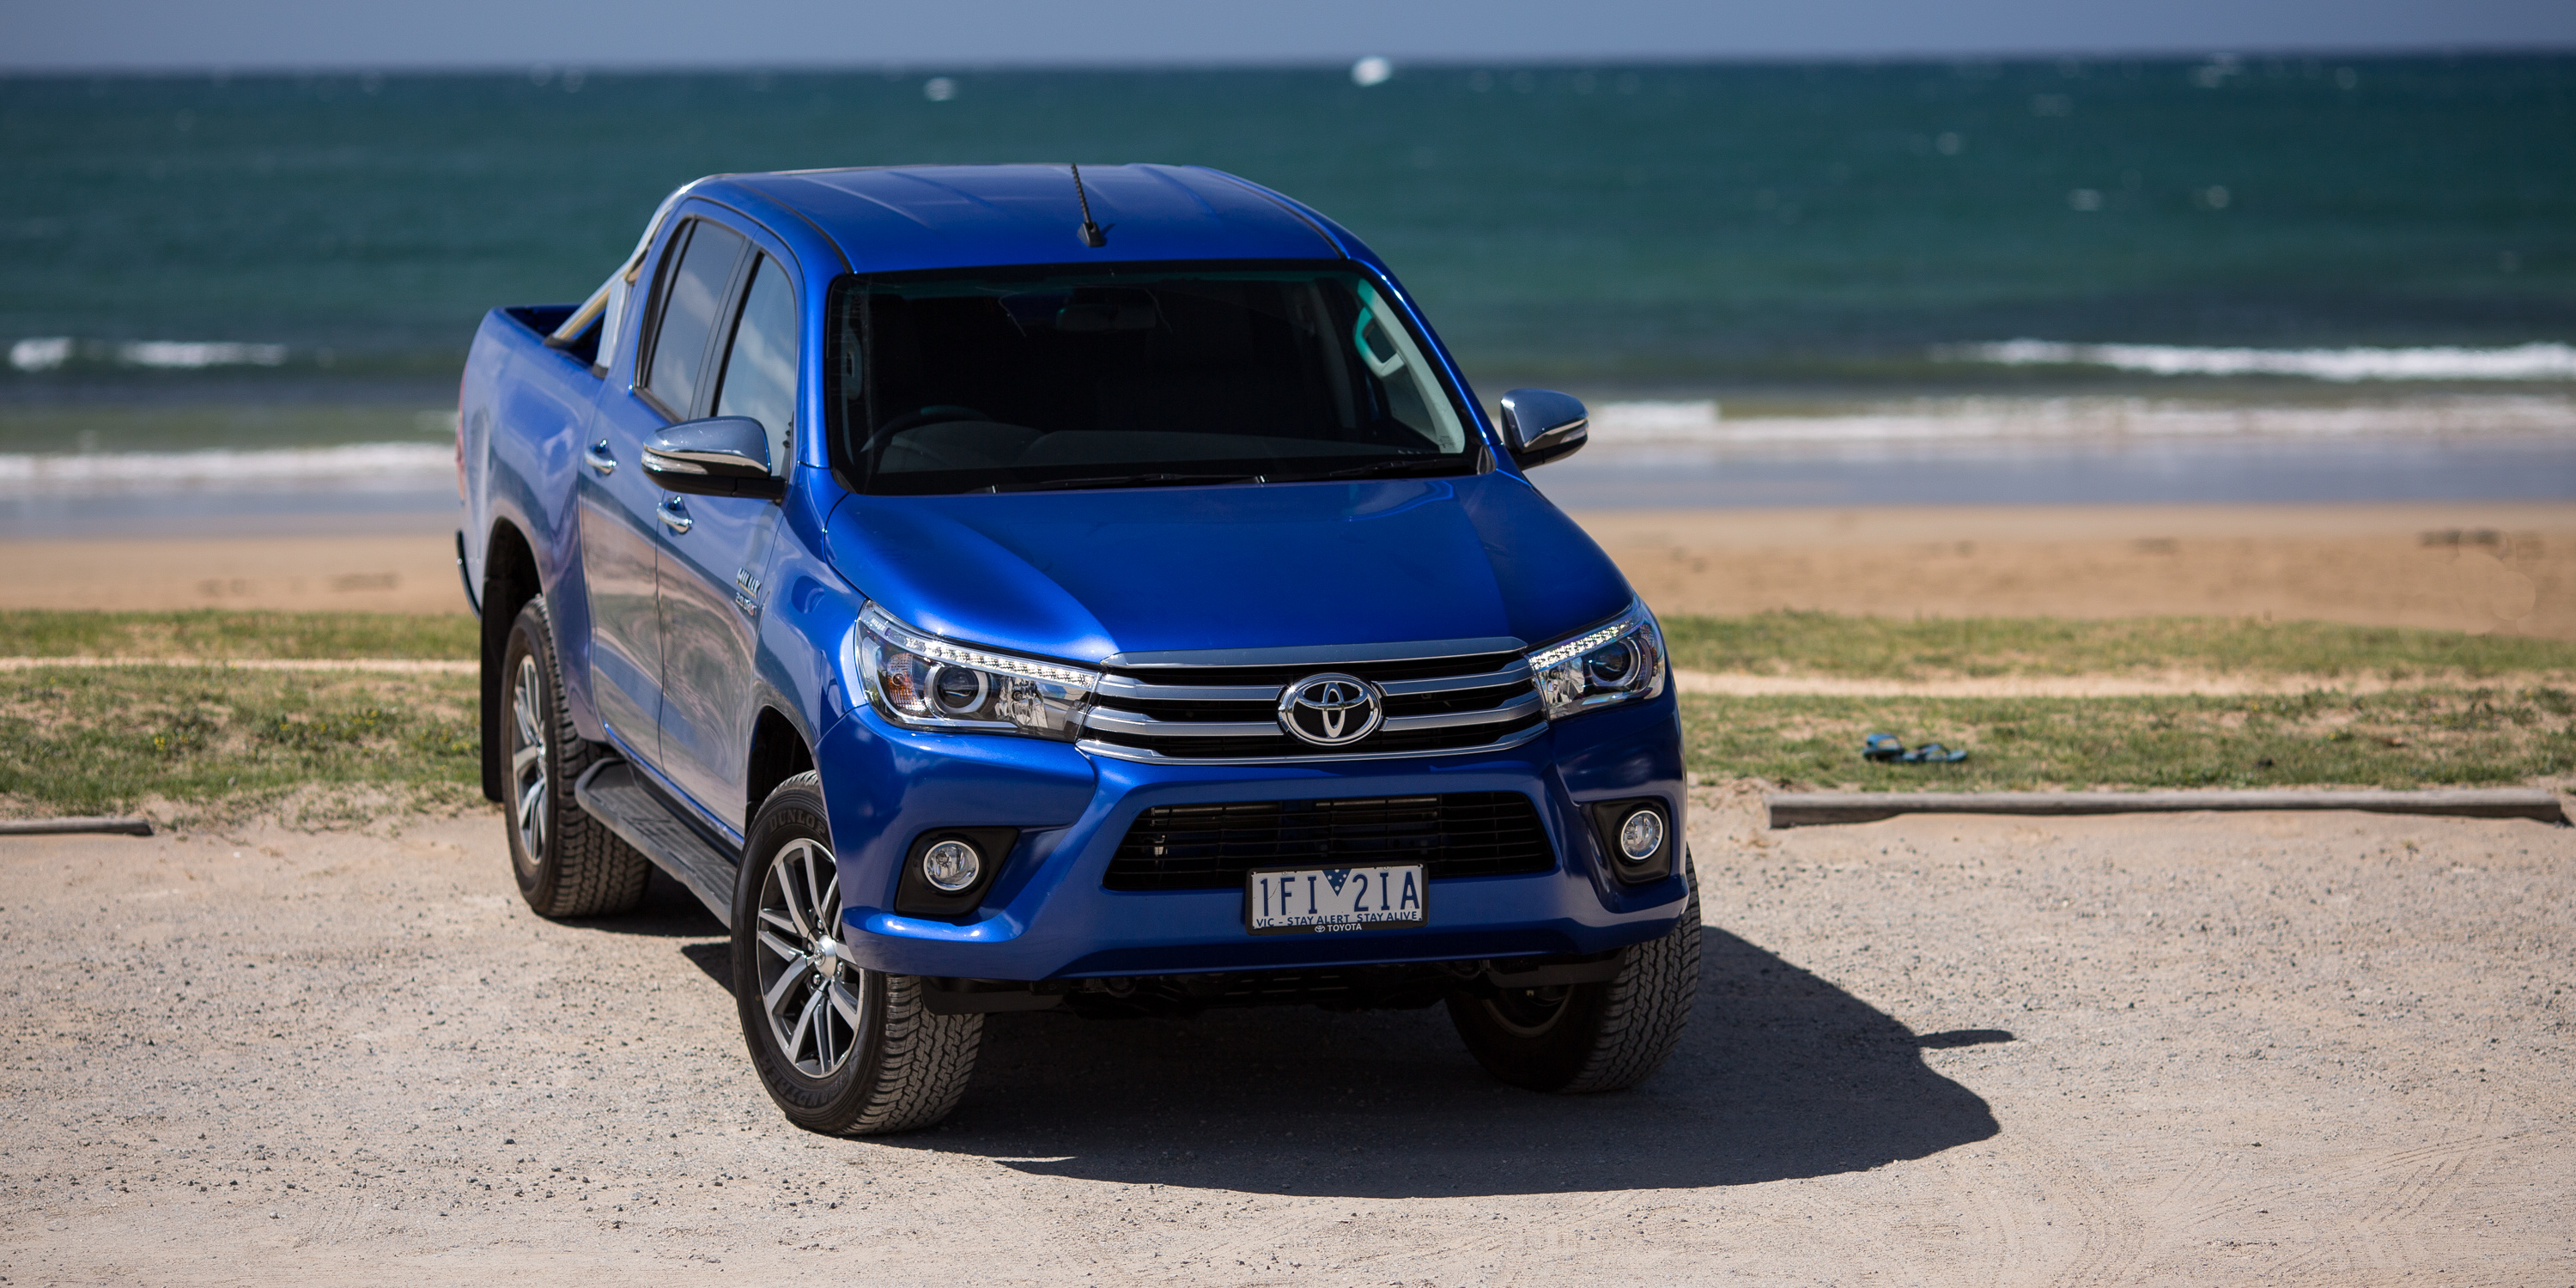 Tucson Dimensions 2017 >> 2016 Toyota HiLux SR5 Review | CarAdvice